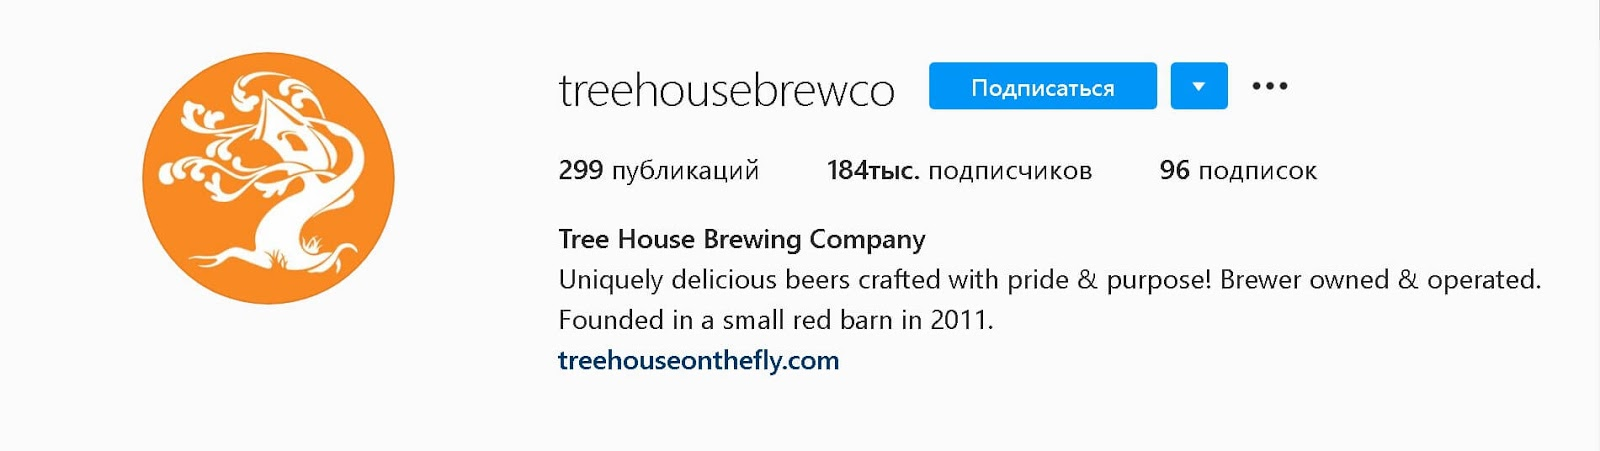 instagram-bio-tree-house-brewing-co